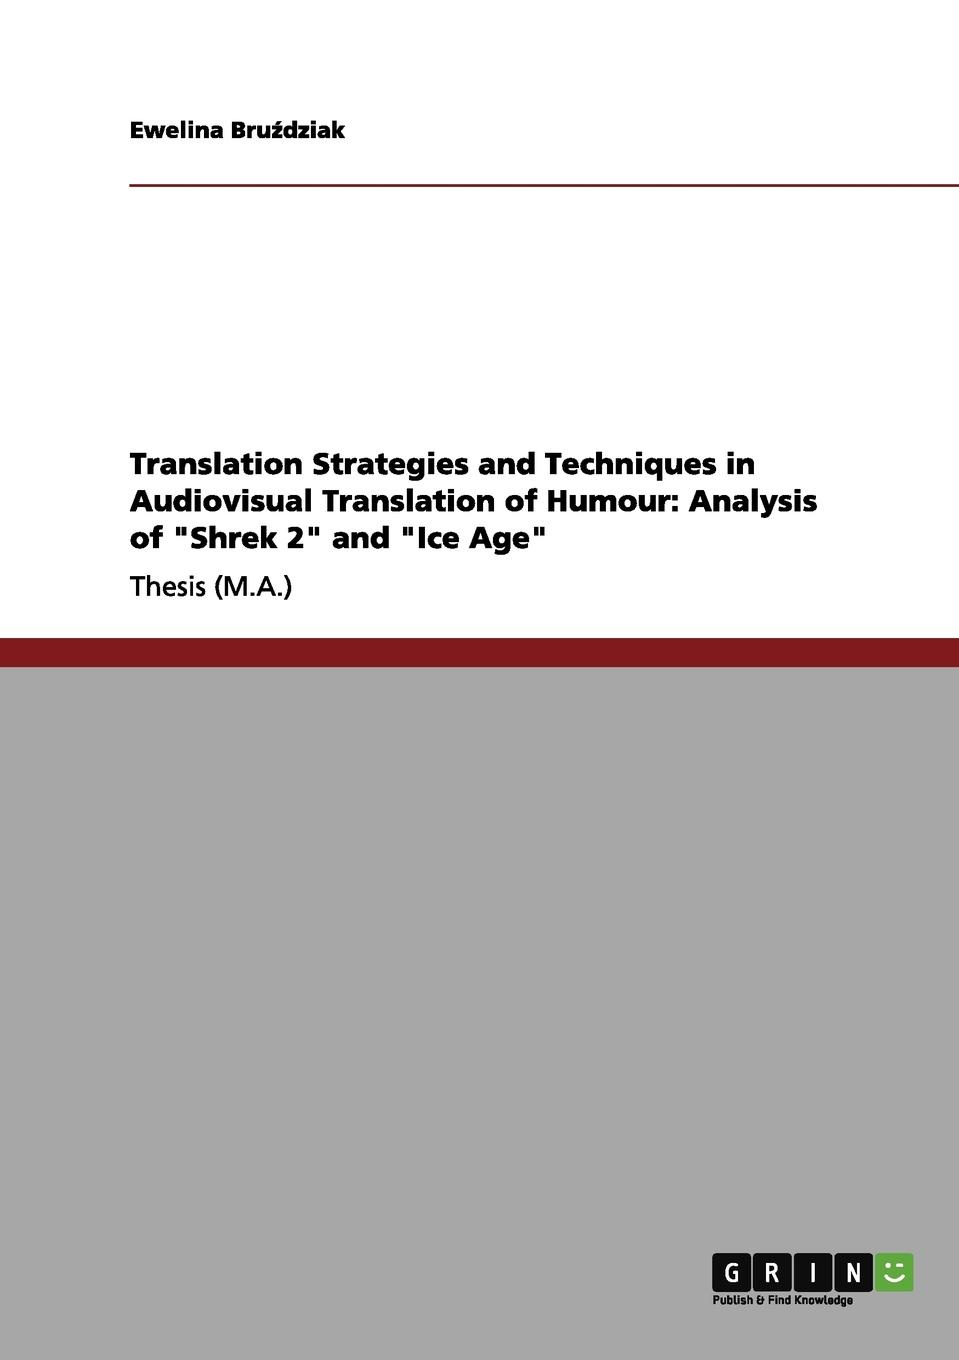 купить Ewelina Bruździak Translation Strategies and Techniques in Audiovisual Translation of Humour. Analysis of